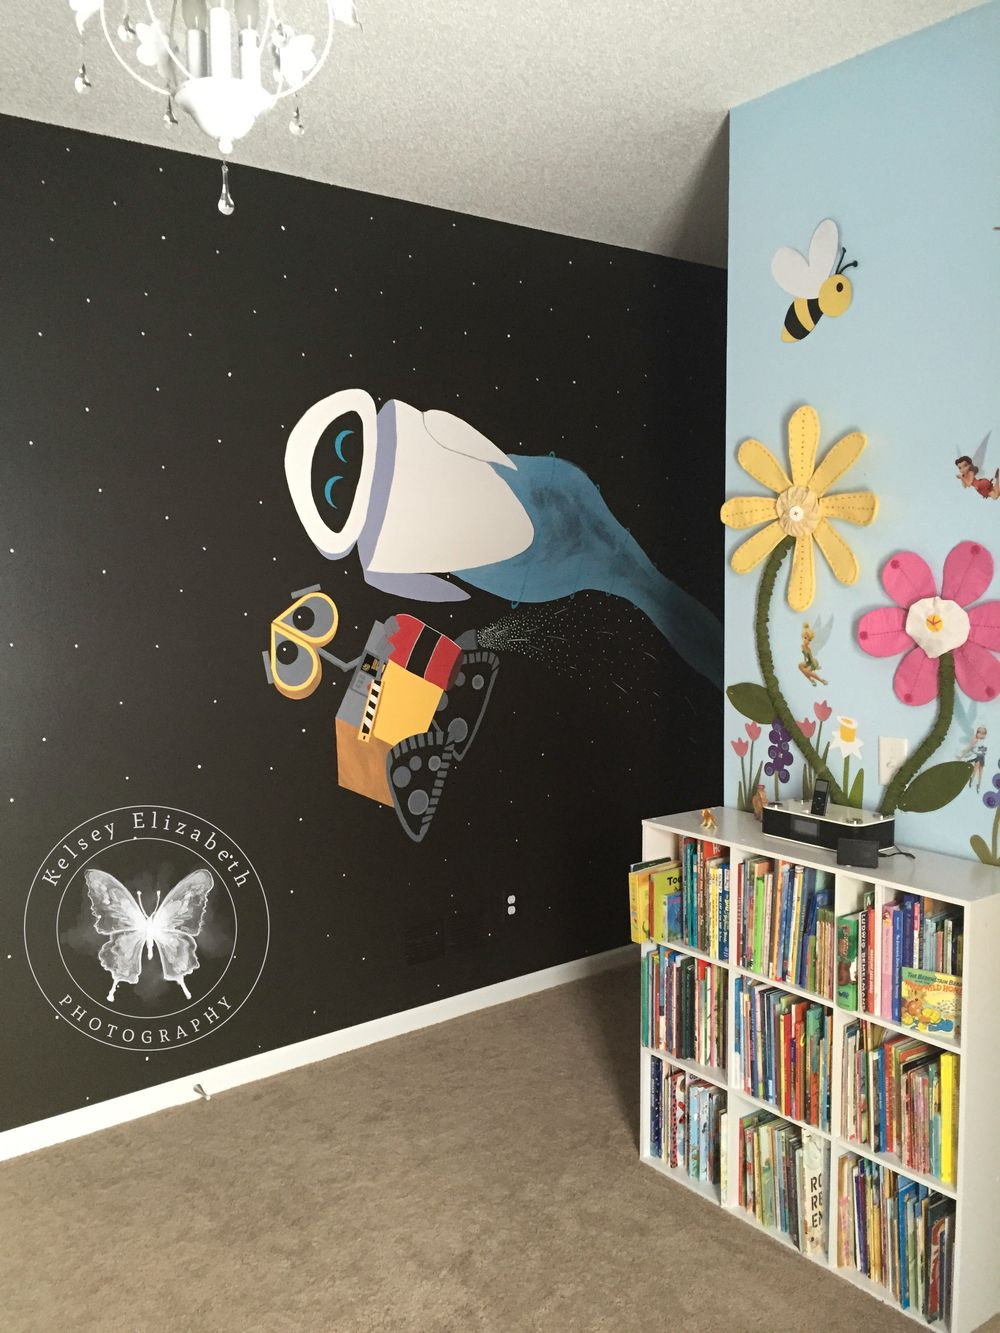 pixar wall e mural wall e bedroom disney bedroom disney mural pixar wall e mural wall e bedroom disney bedroom disney mural